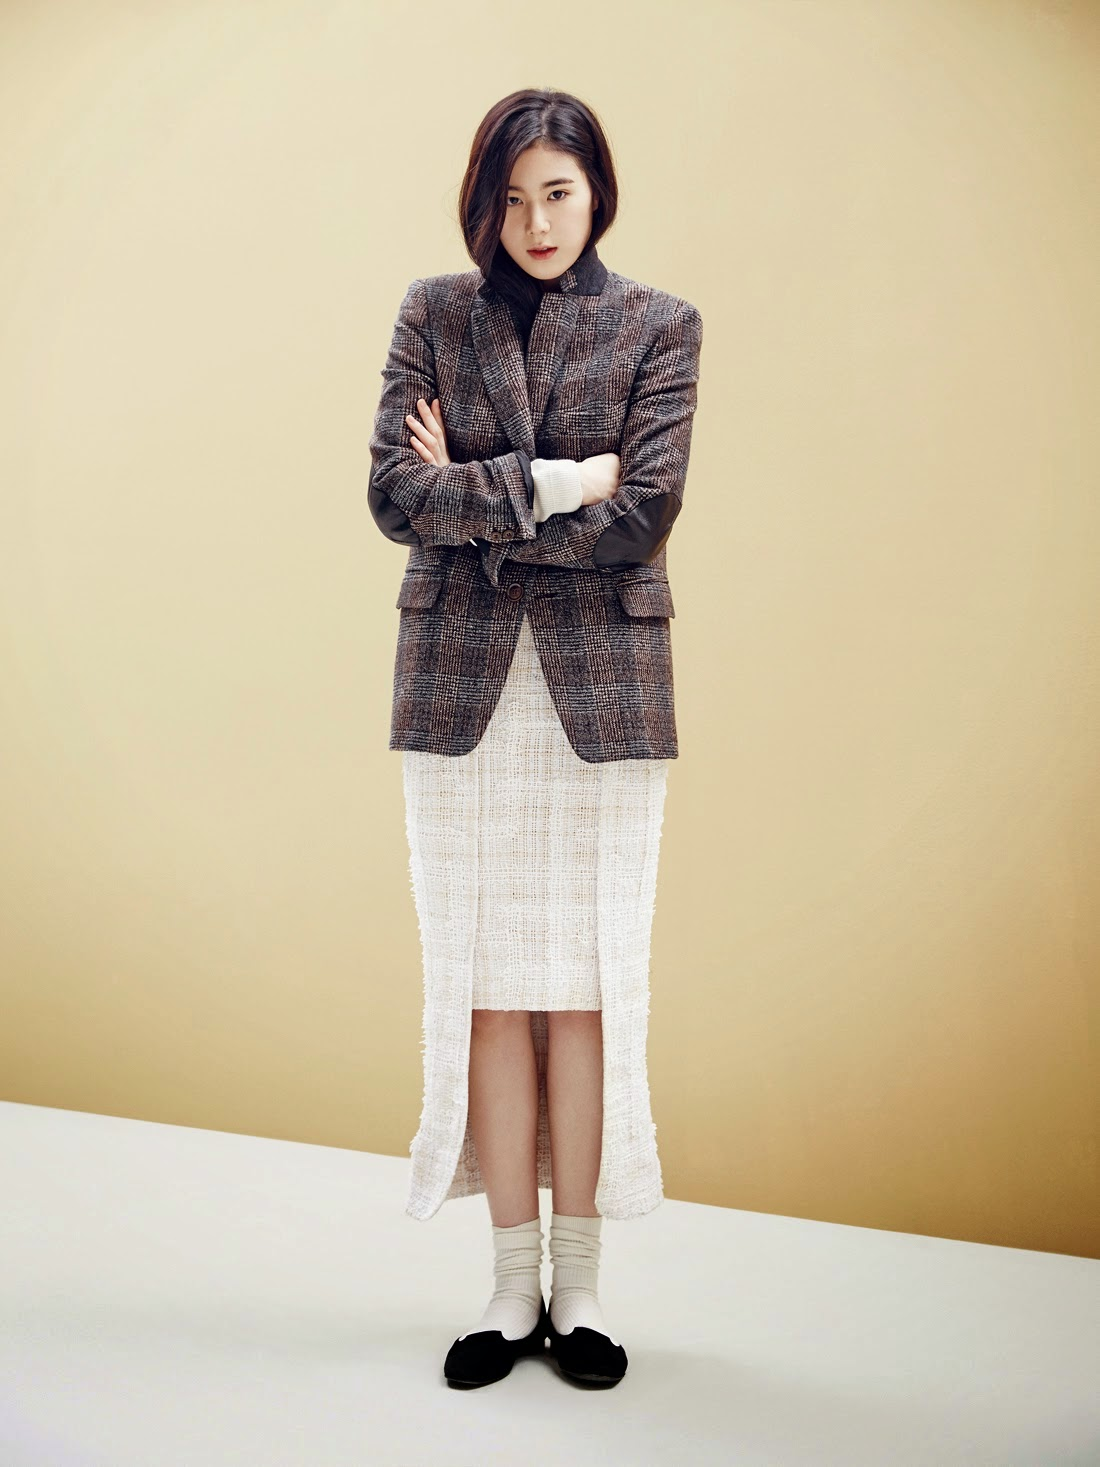 Jung Eun Jae - W Magazine February Issue 2014